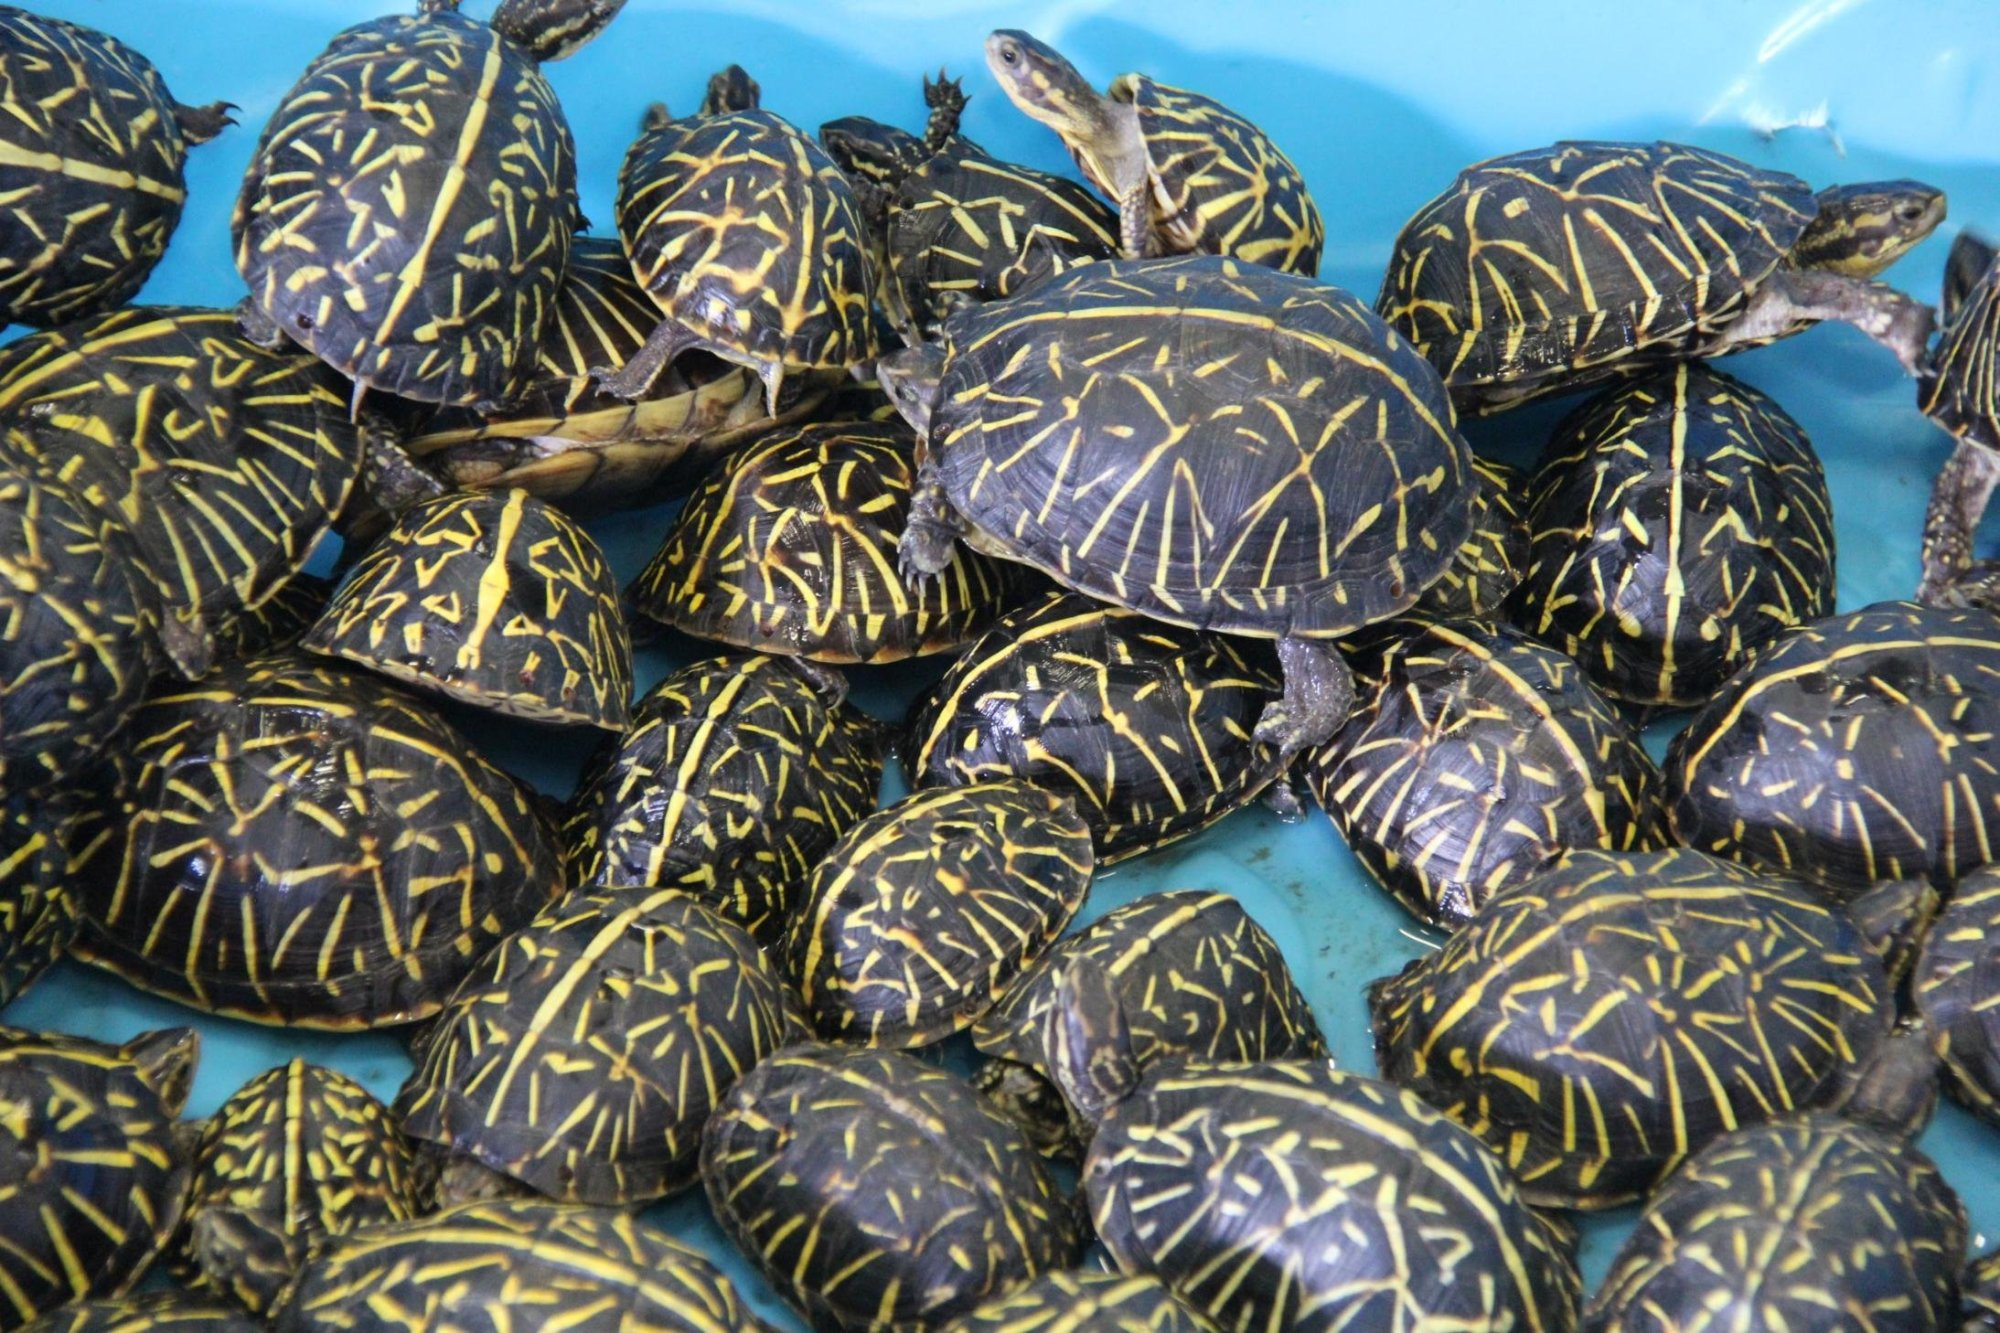 Two suspects have been charged for smuggling thousands of turtles and selling them illegally.